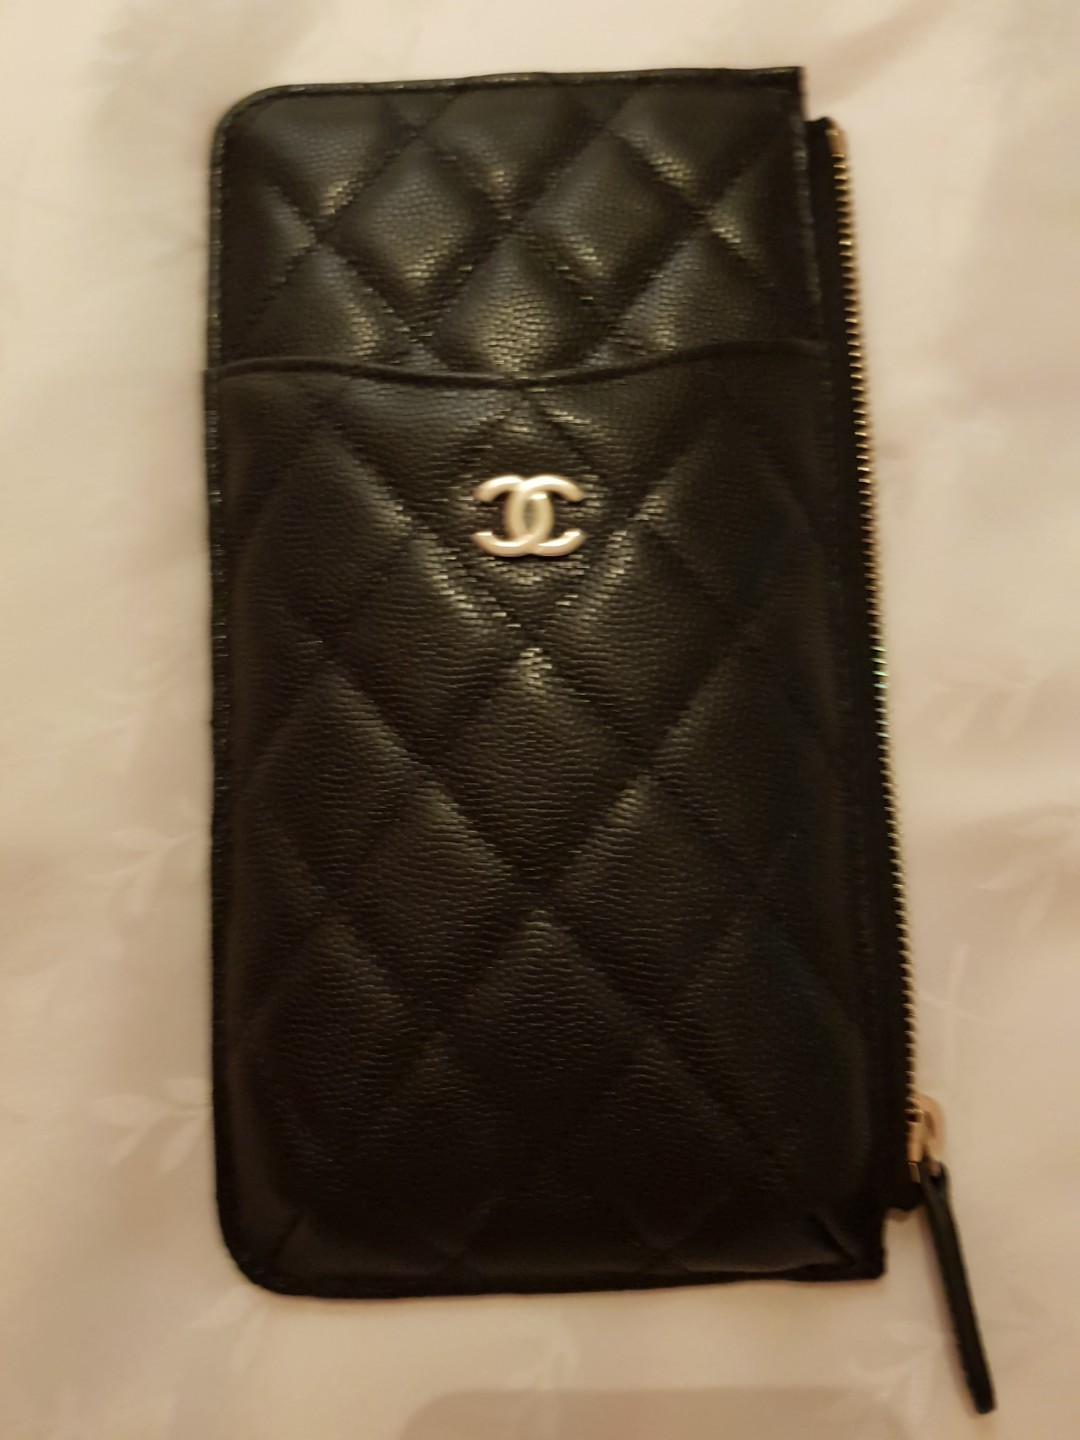 8301baf19a94 Chanel Phone Pouch, Luxury, Bags & Wallets, Wallets on Carousell